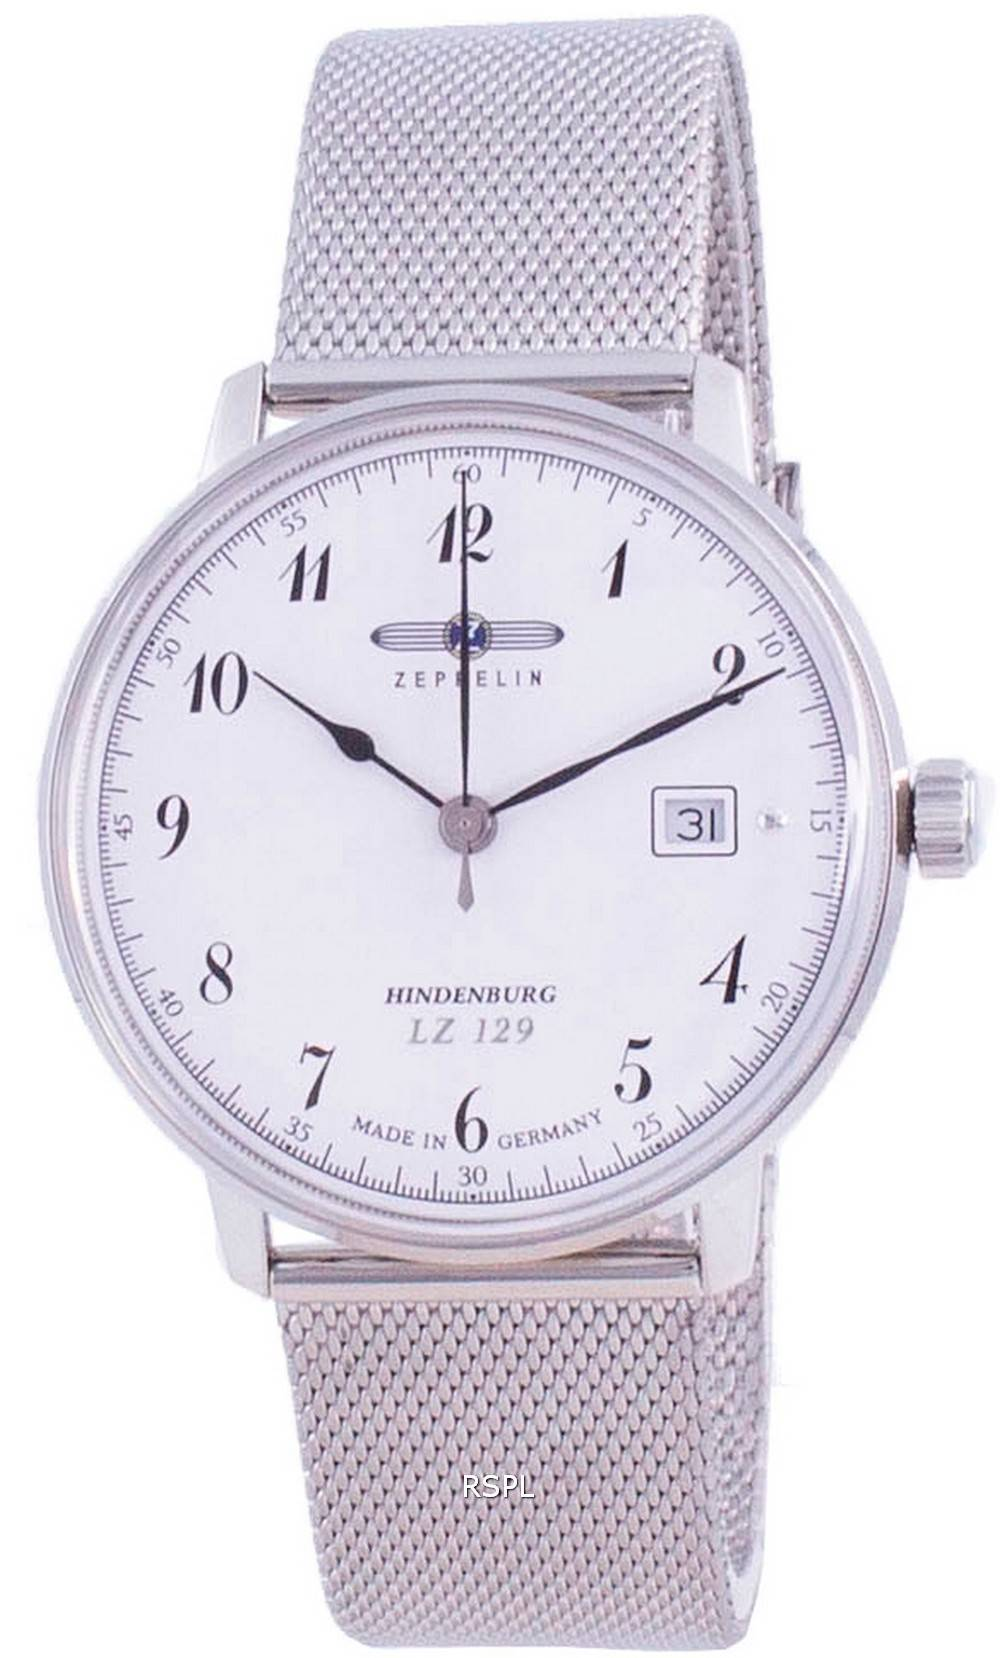 Zeppelin LZ 129 Hindenburg Quartz 7046M-1 7046M1 Herrenuhr